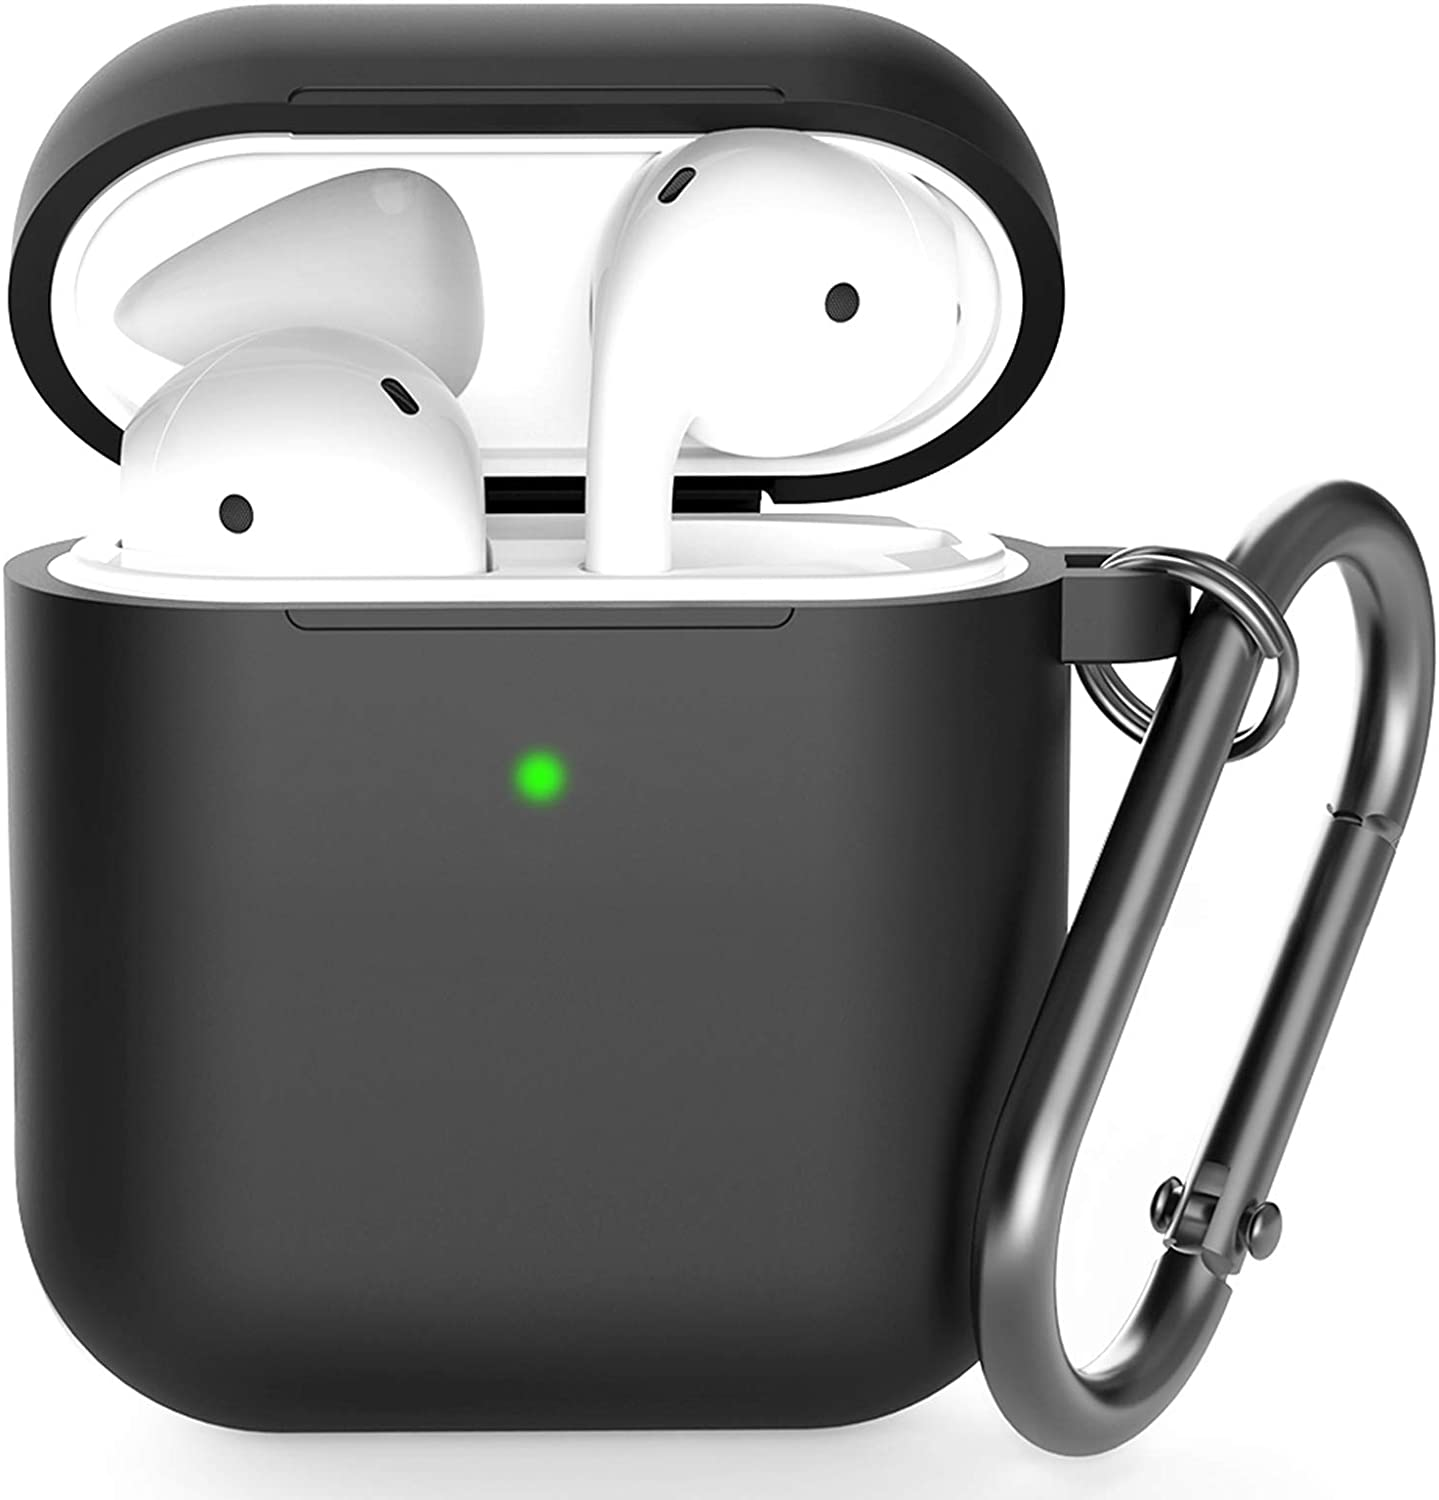 Airpods Case , BELONGME Airpods Silicone Case Cover with Keychain, 360°Protective AirPods Accessories Kits Shockproof Airpods Case Compatible with Apple Airpods 2 &1 (Front LED Visible) Black